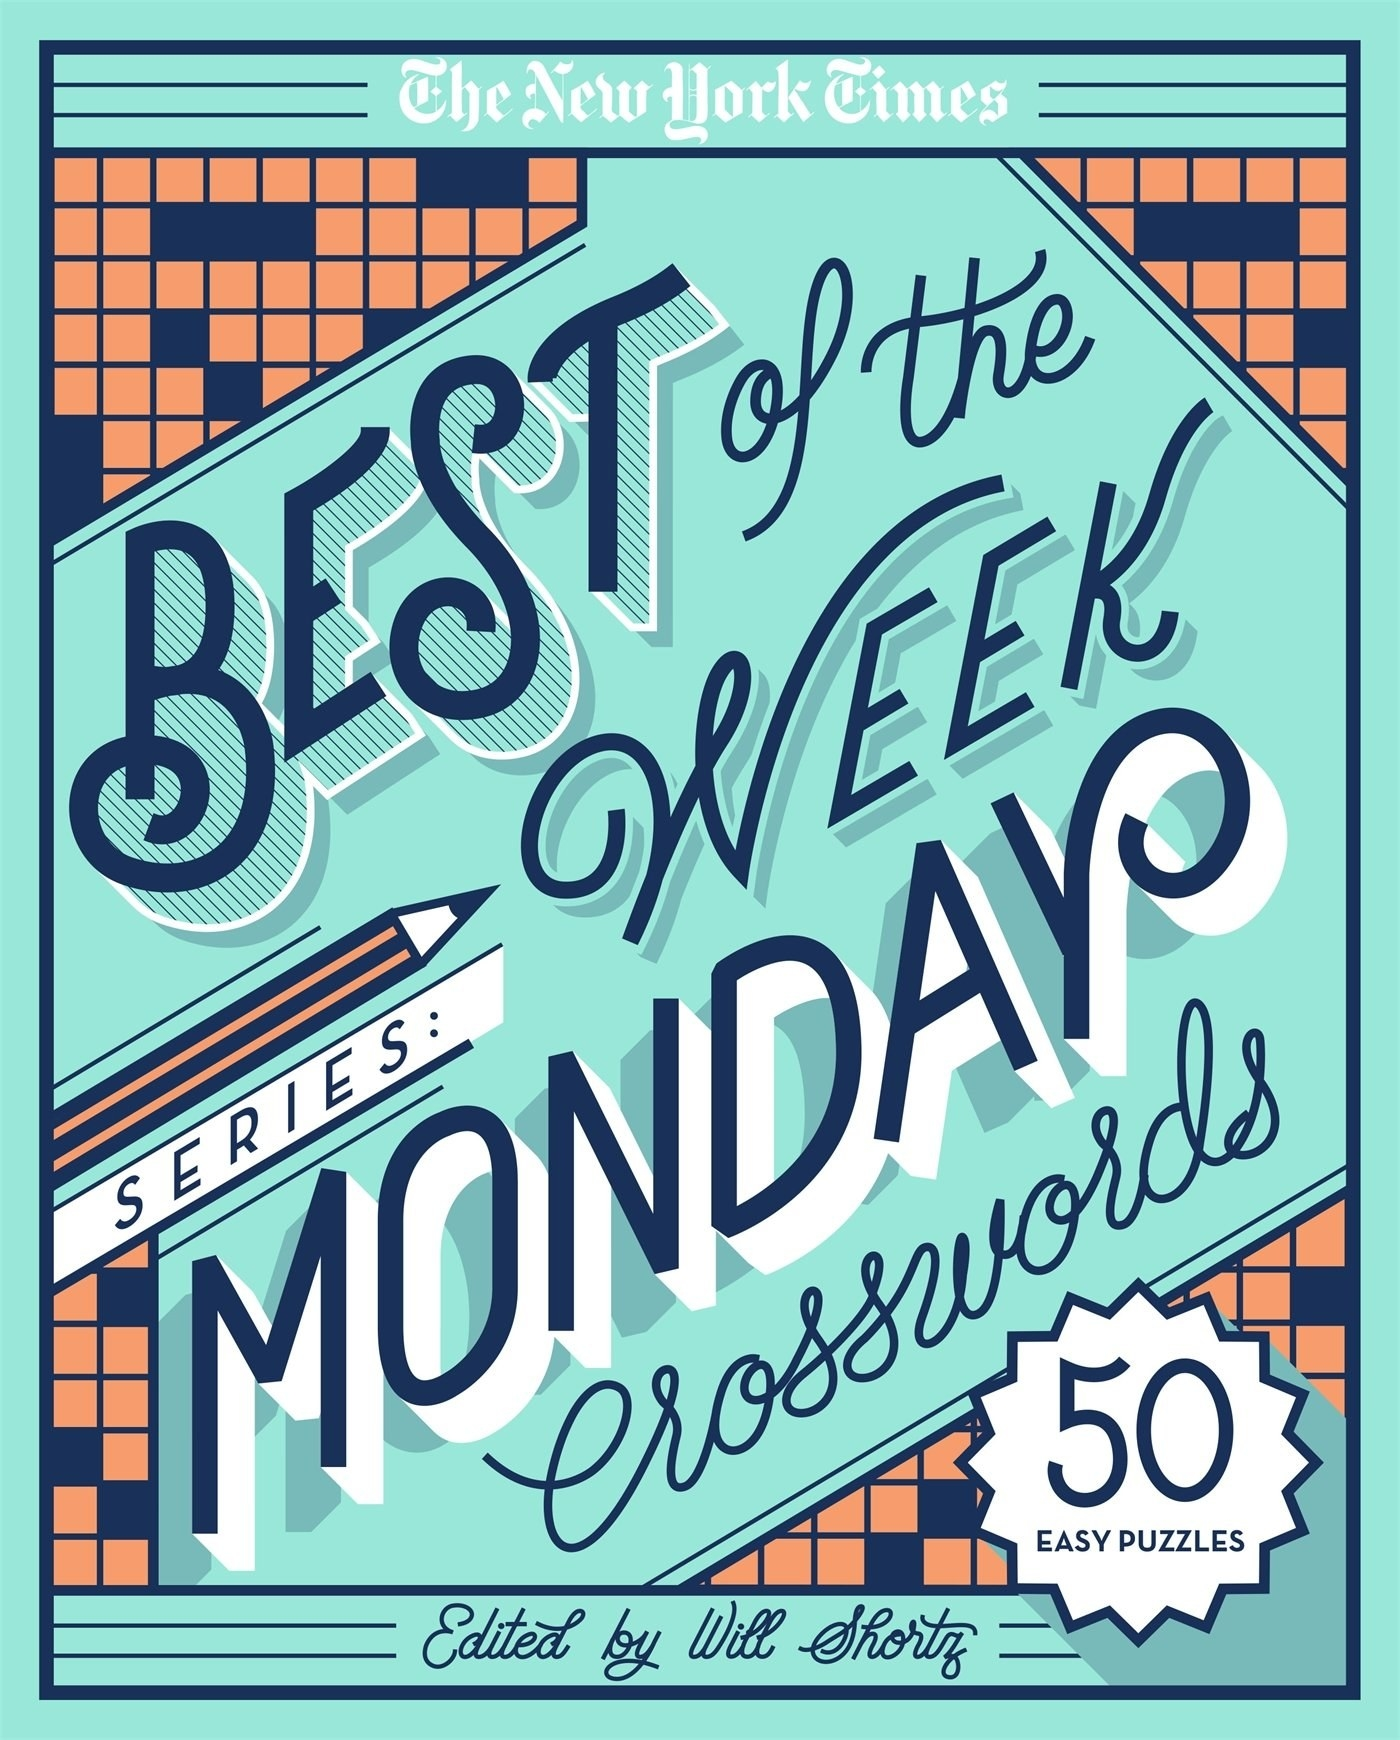 the teal cover of the new york times monday crossword book